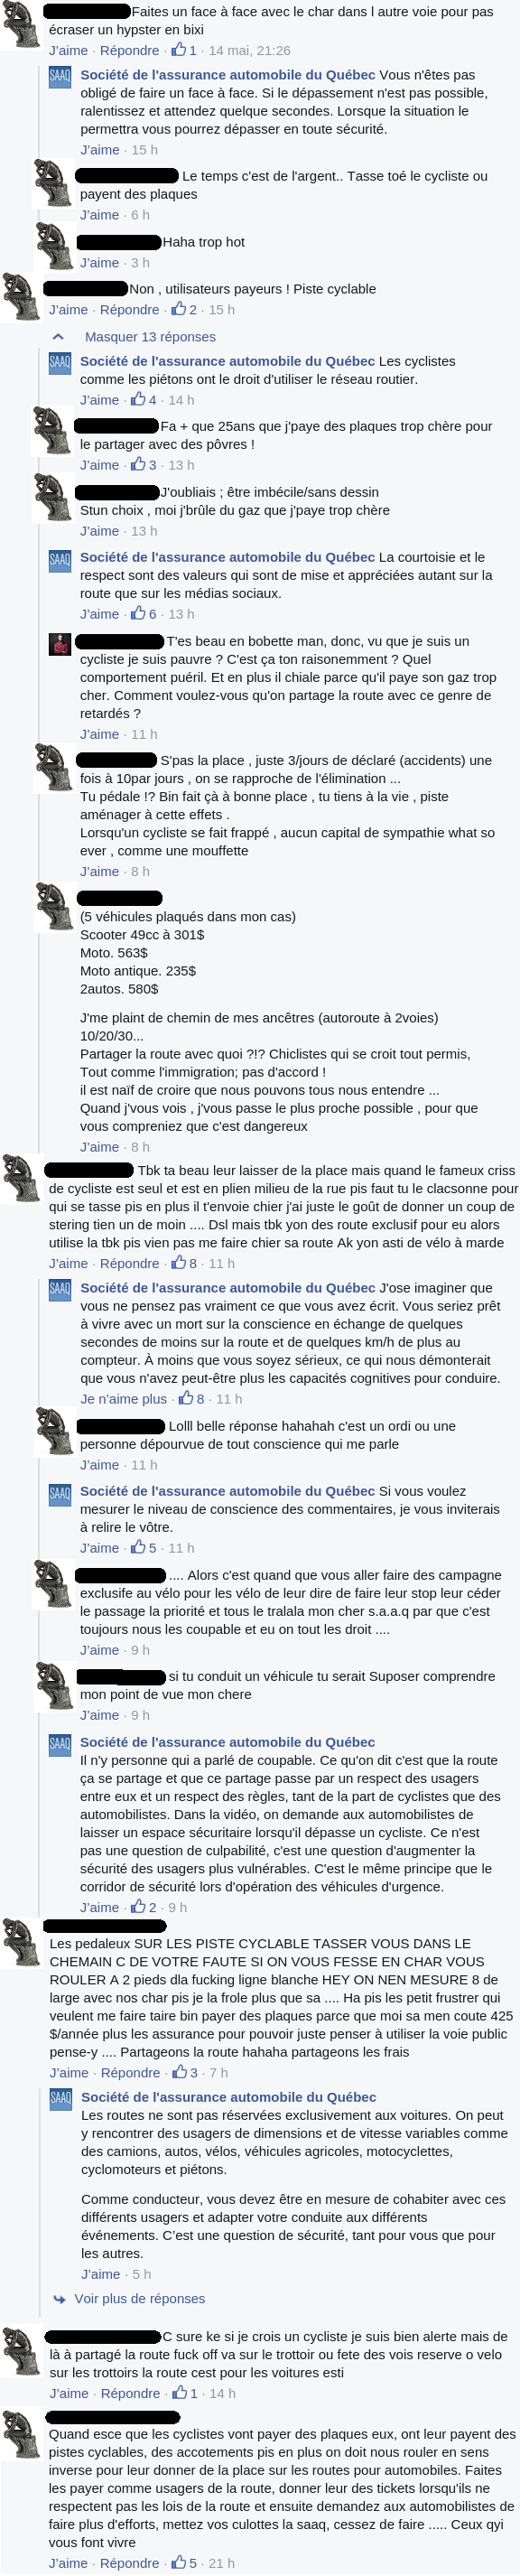 commentaires_saaq.png